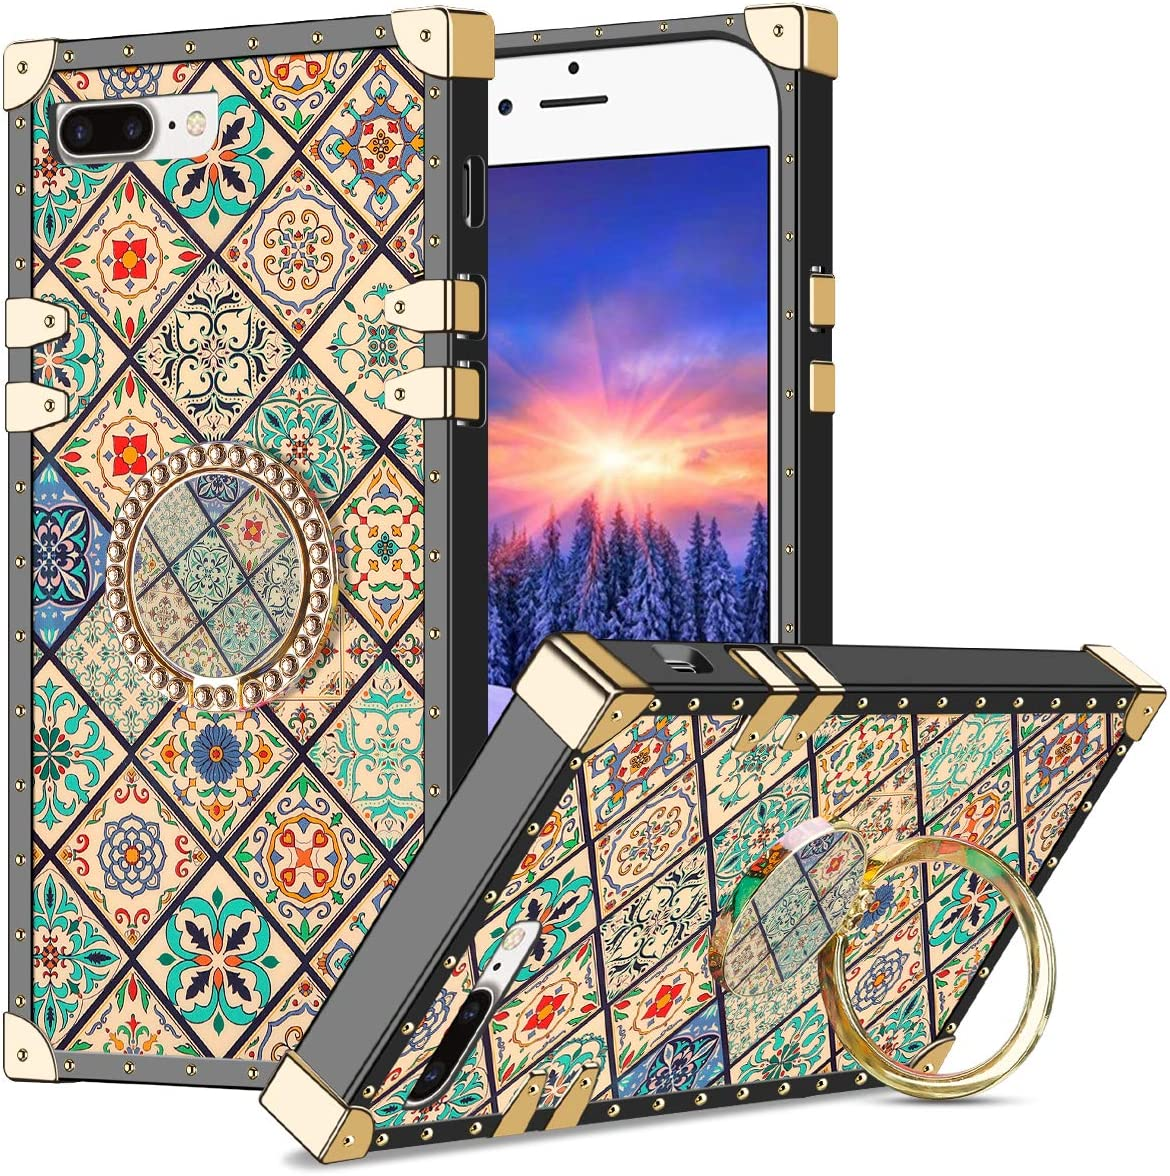 WOLLONY for iPhone 7 Case,iPhone 8 Case with Ring Stand Square Edge for Hippie Women Girl Retro Flower Kickstand Protective Heavy Duty Reinforced Shockproof for iPhone 7/8/SE2 4.7inch Square